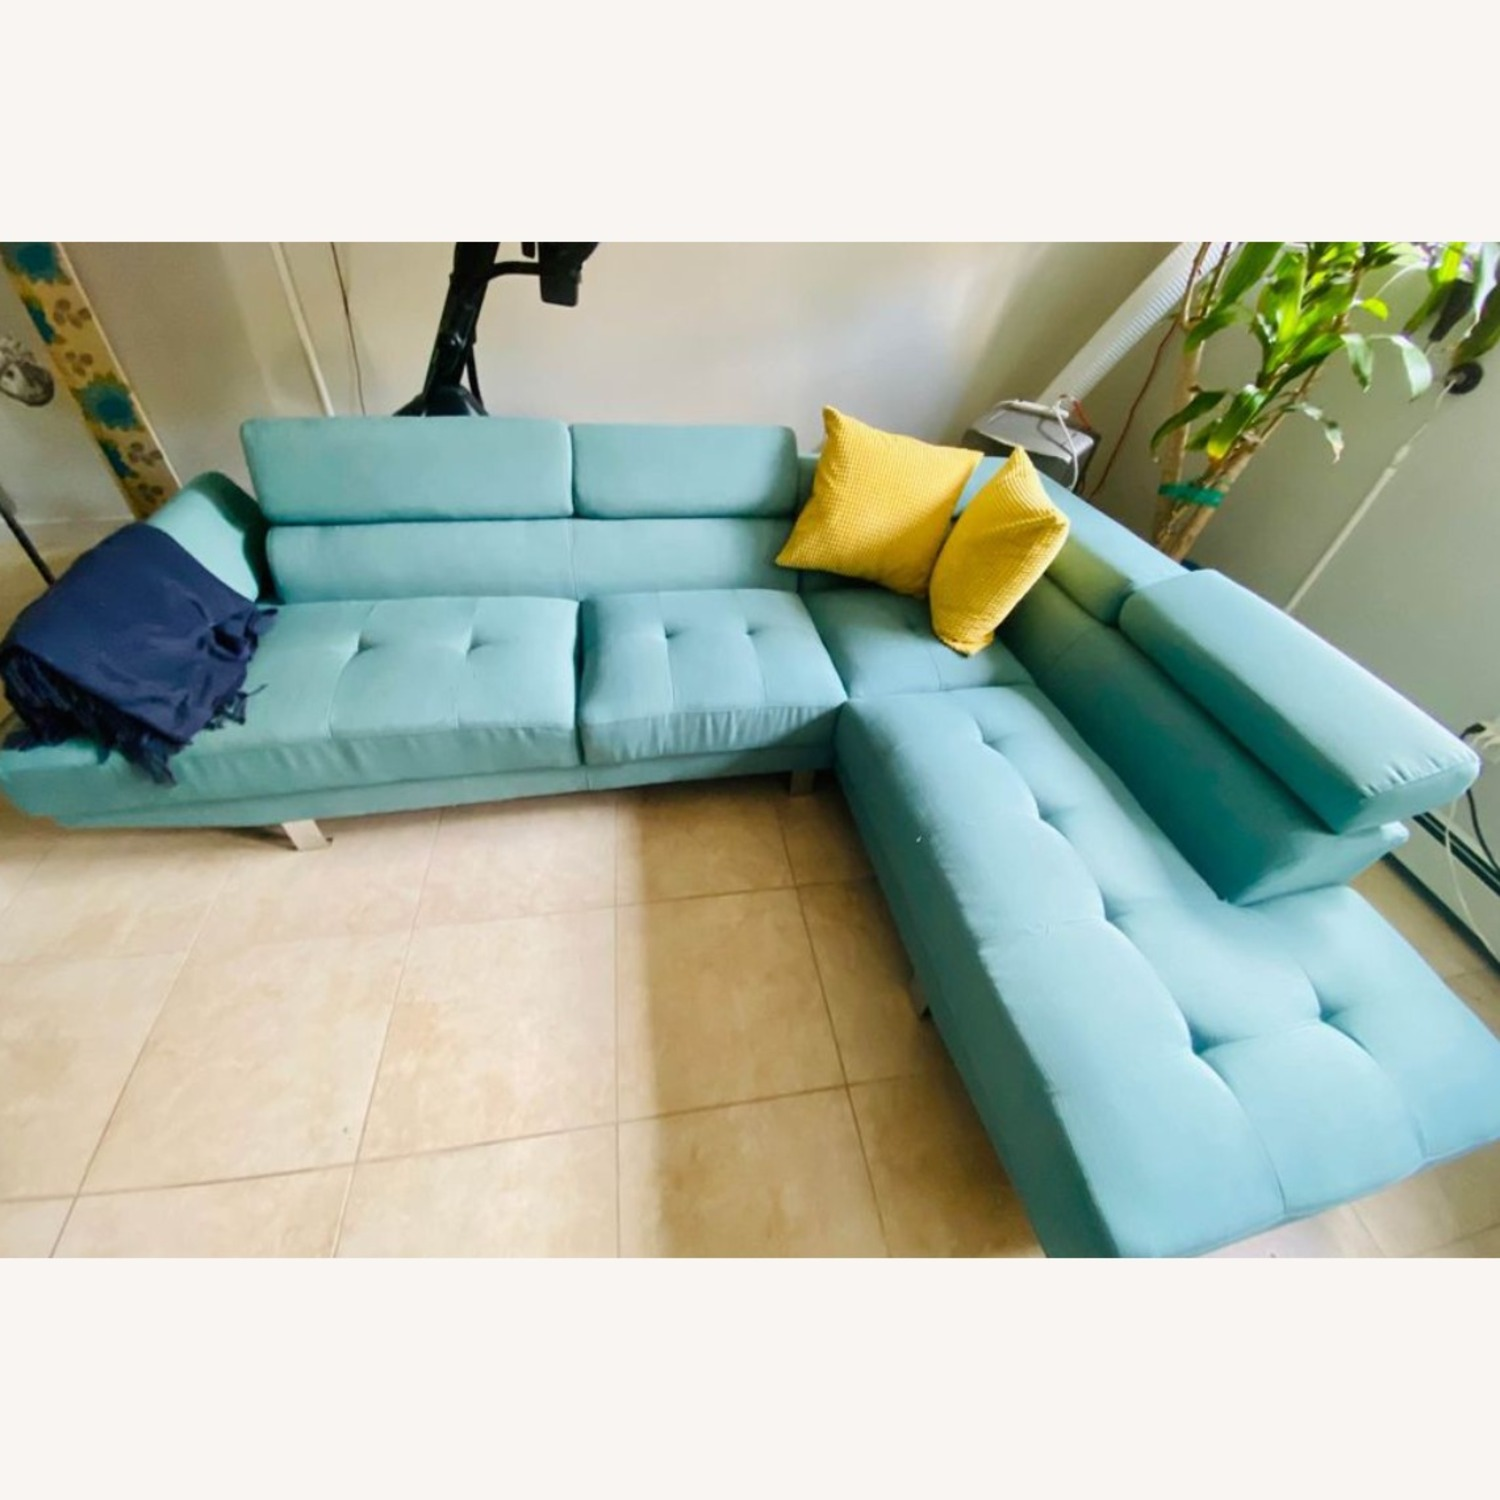 Wayfair Sectional Couch - image-3